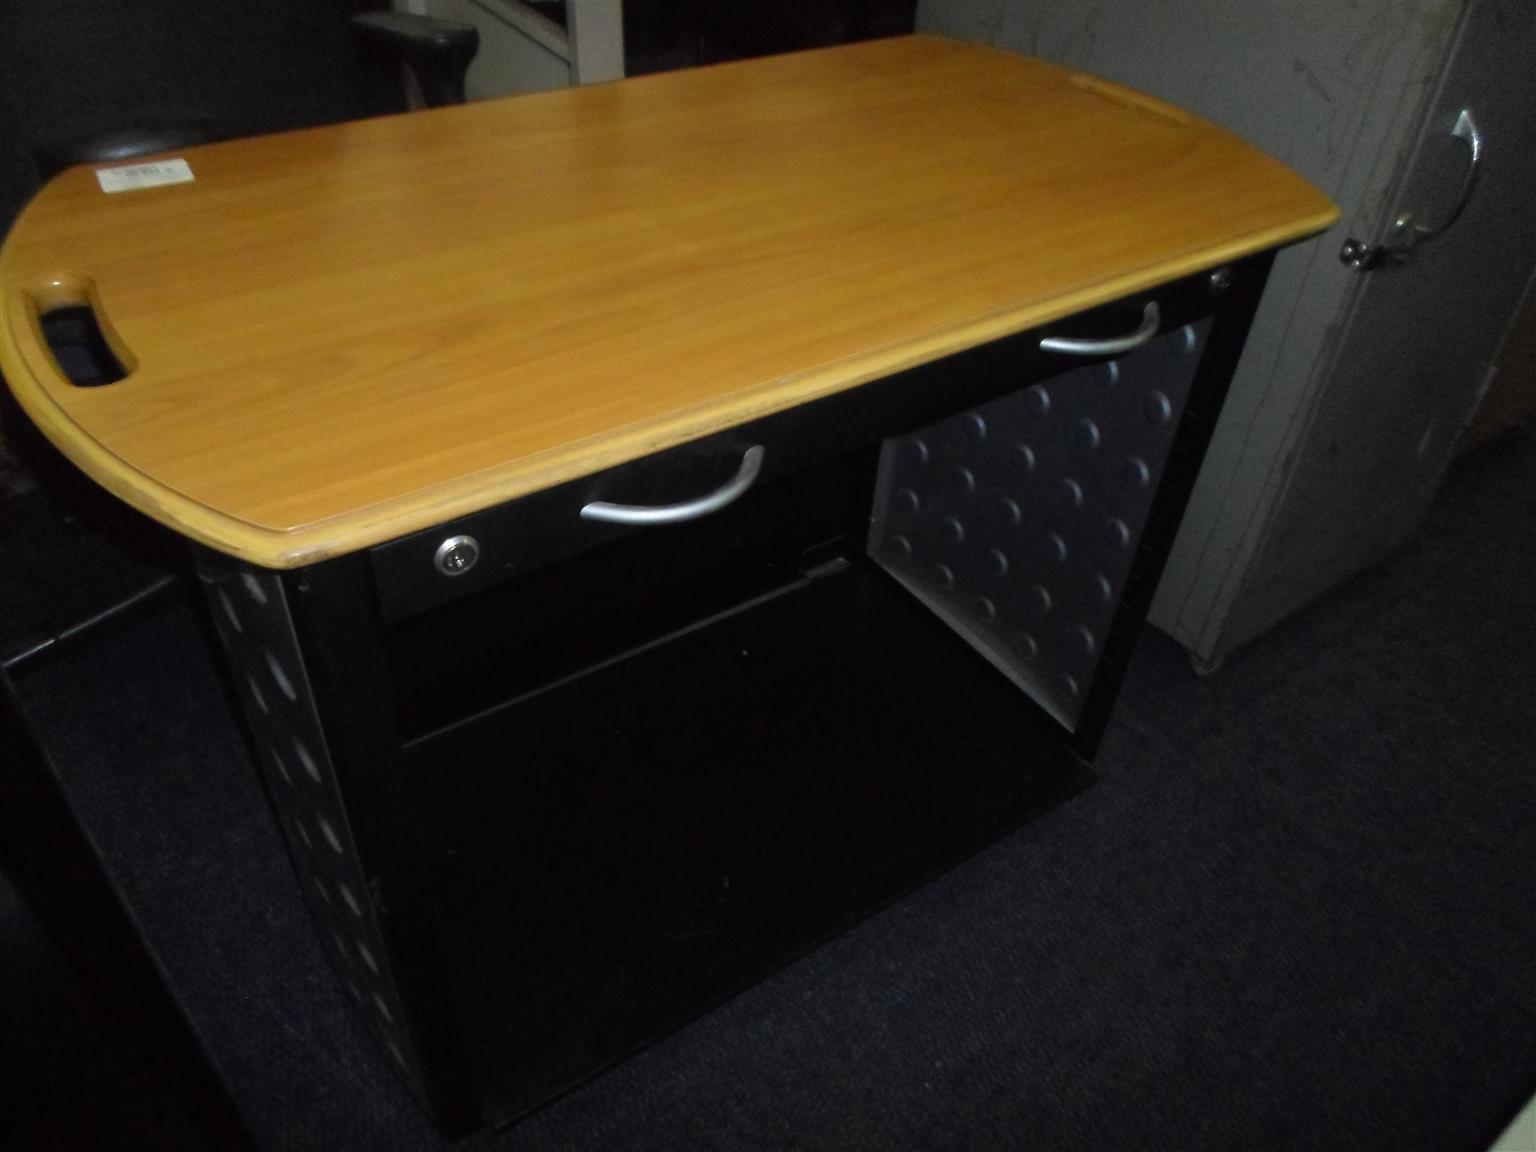 La Credenza Catering : Drawer credenza computer stand junk mail